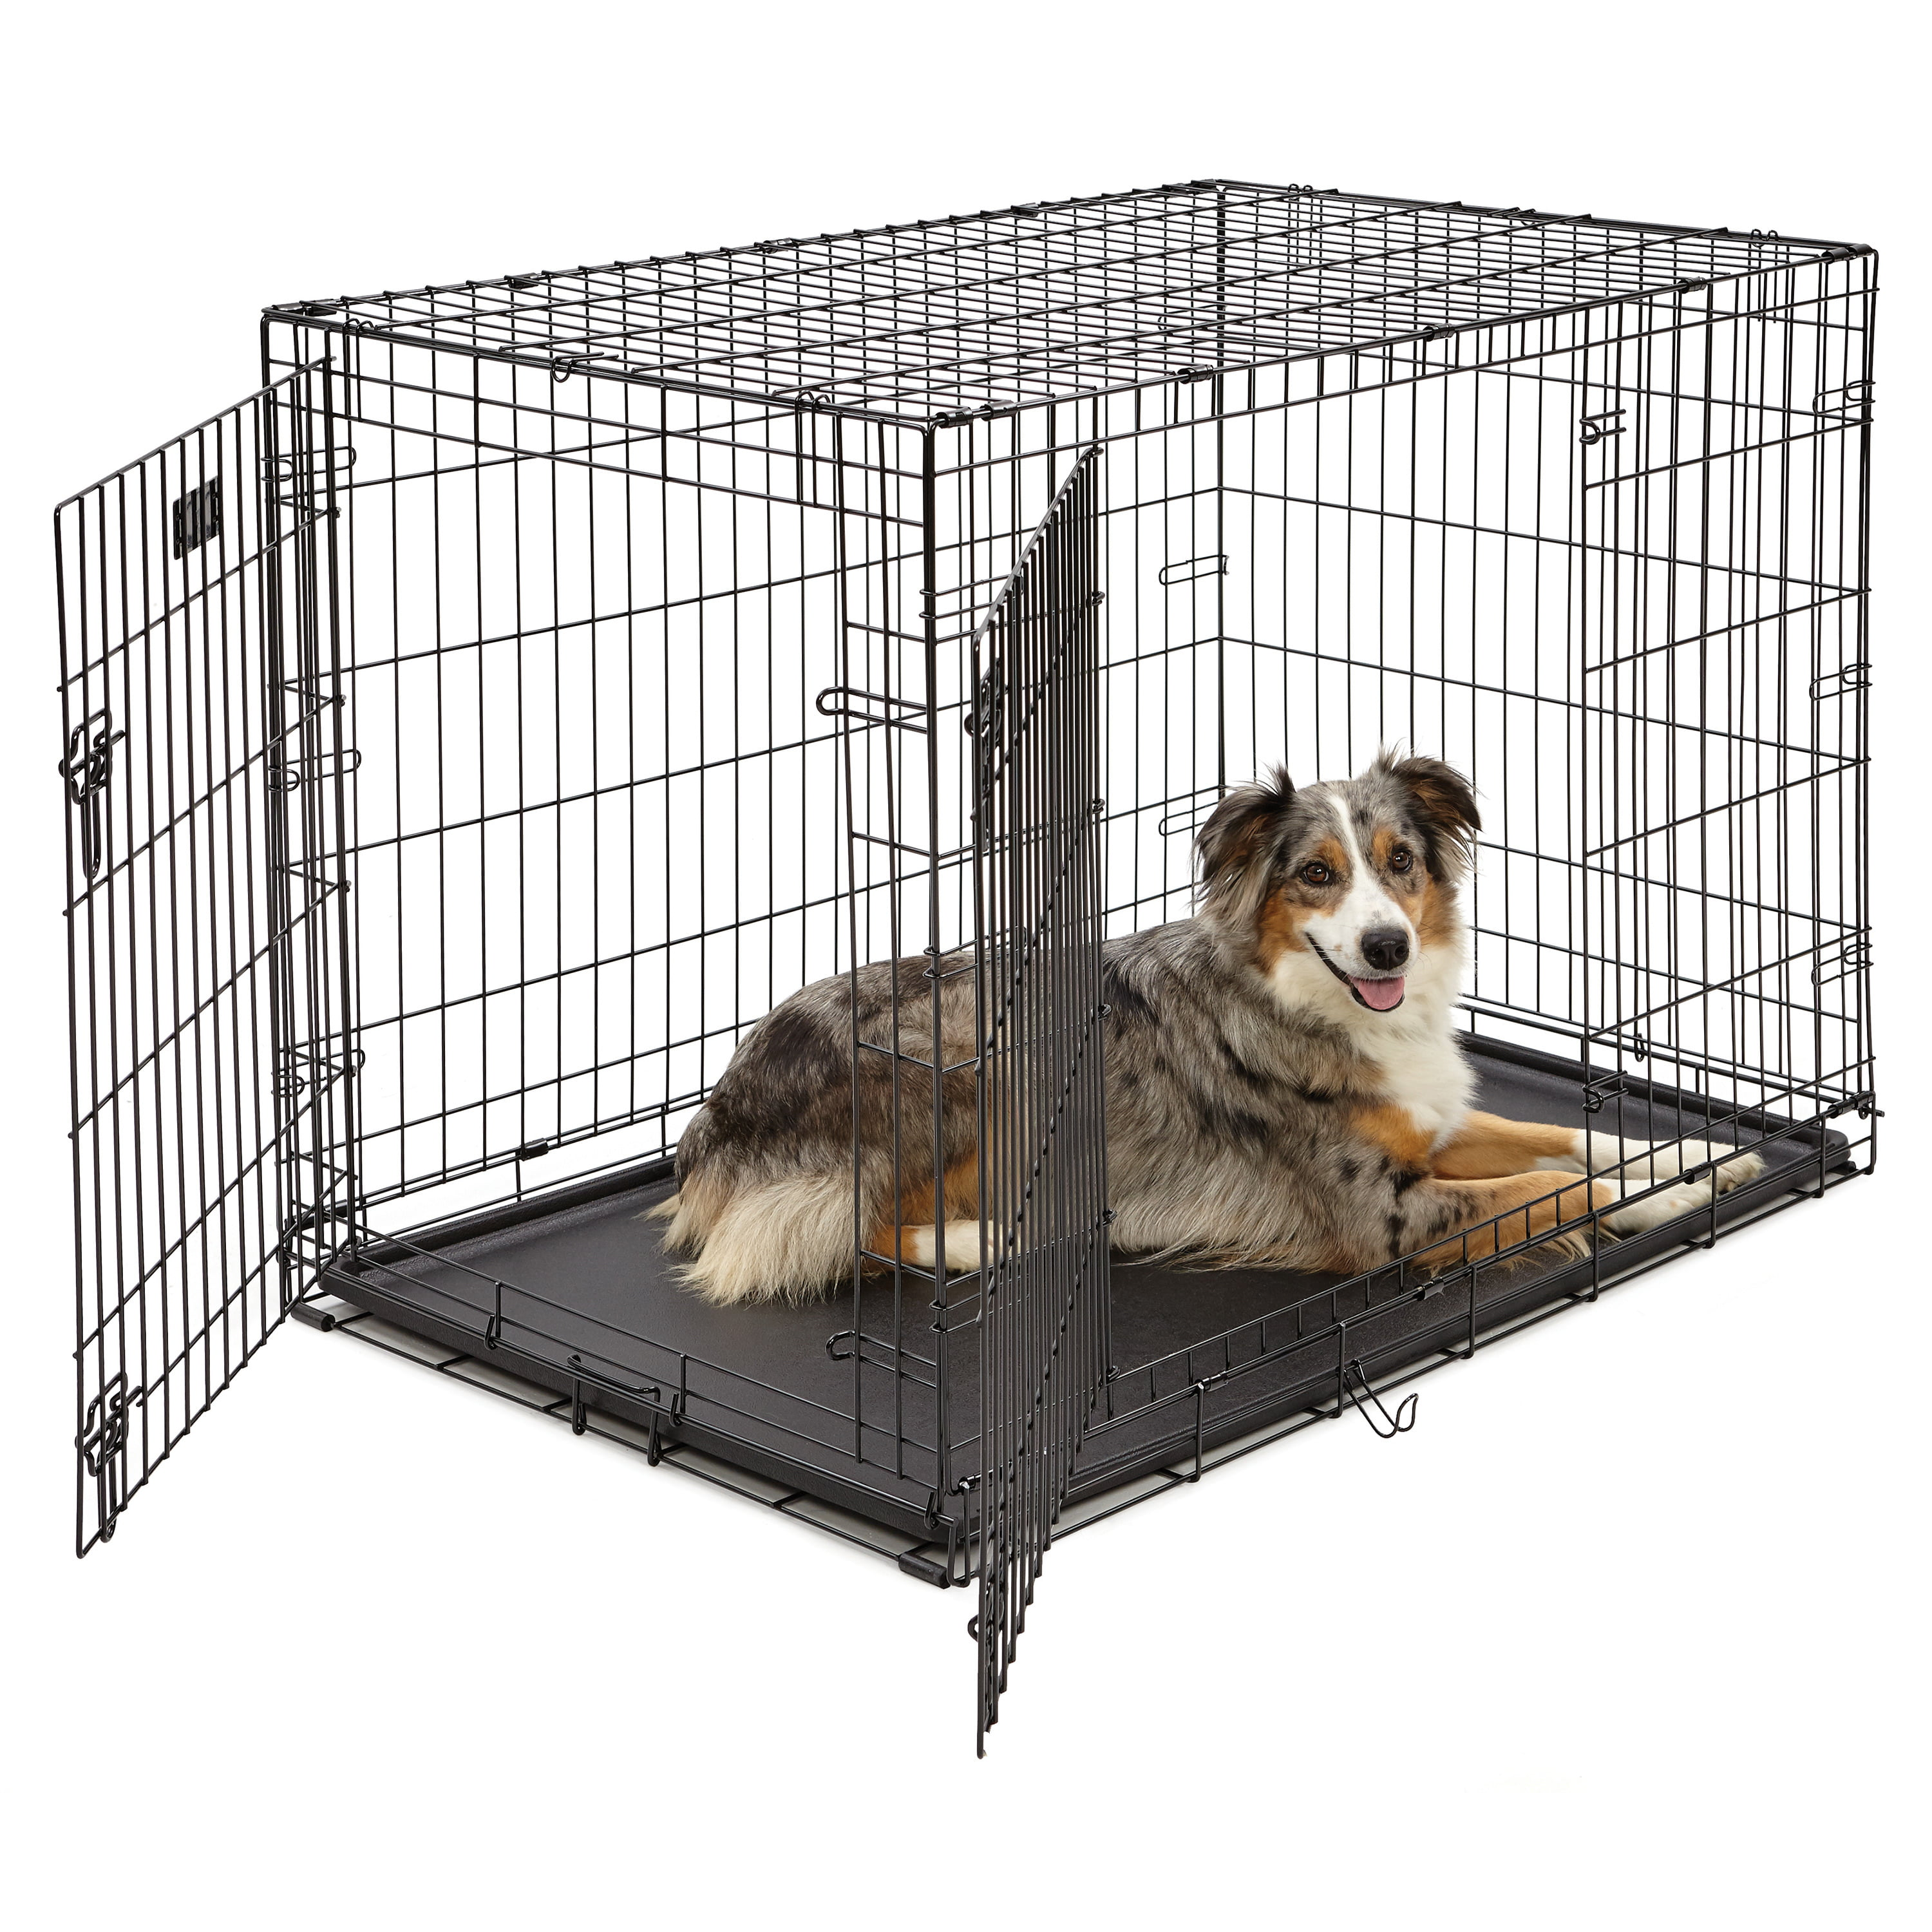 Double Door iCrate Metal Dog Crate, 42-Inch, Black by Midwest Homes For Pets